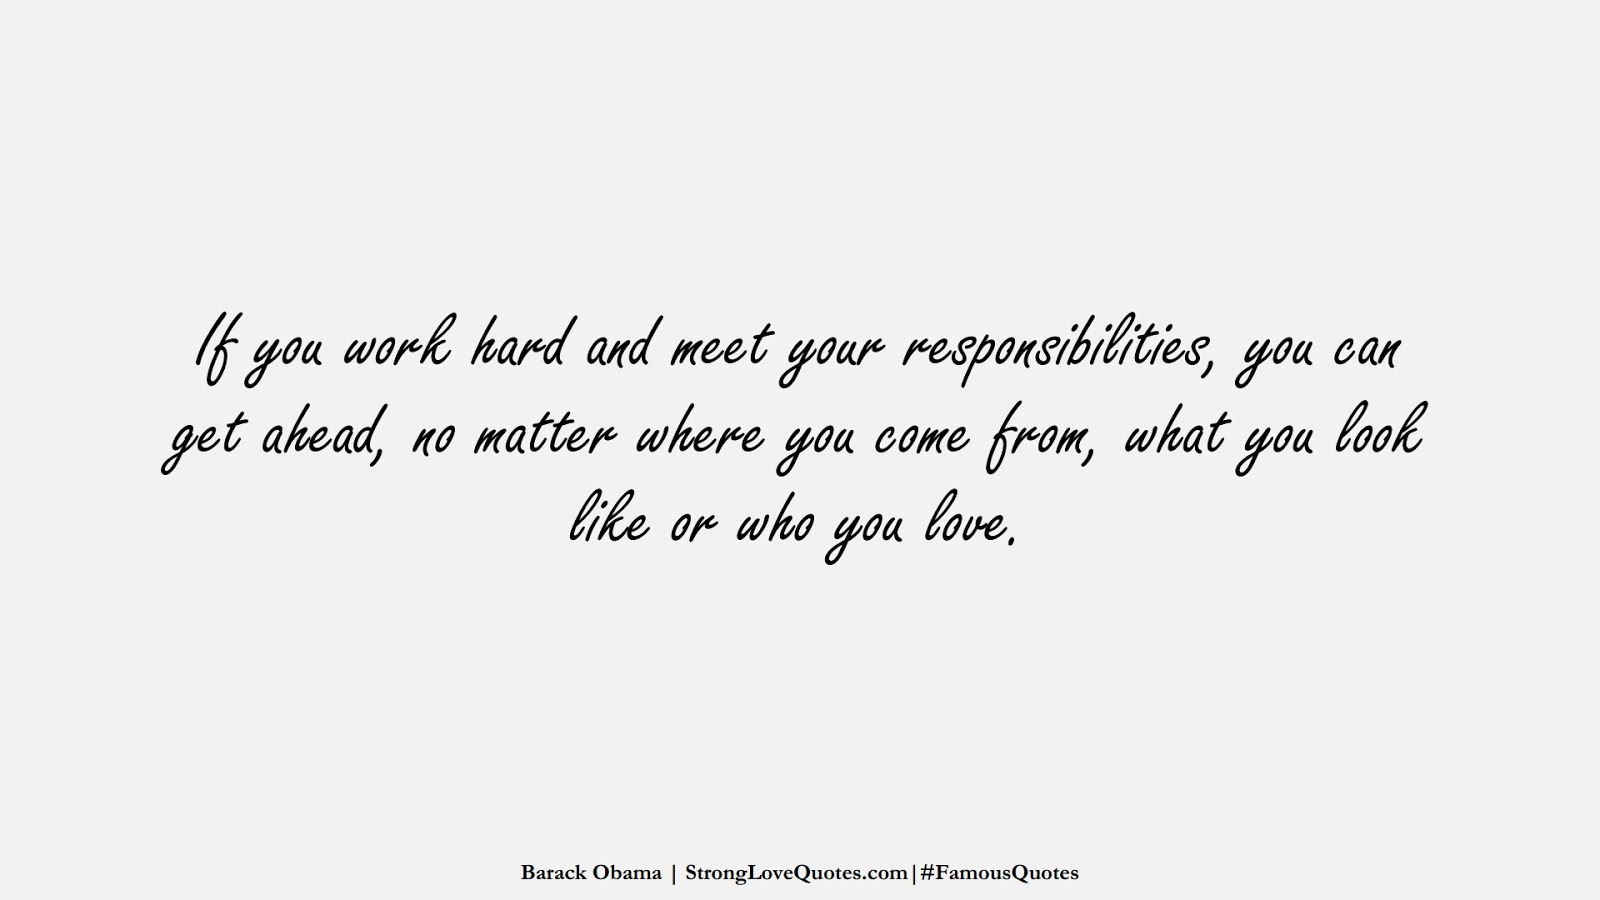 If you work hard and meet your responsibilities, you can get ahead, no matter where you come from, what you look like or who you love. (Barack Obama);  #FamousQuotes